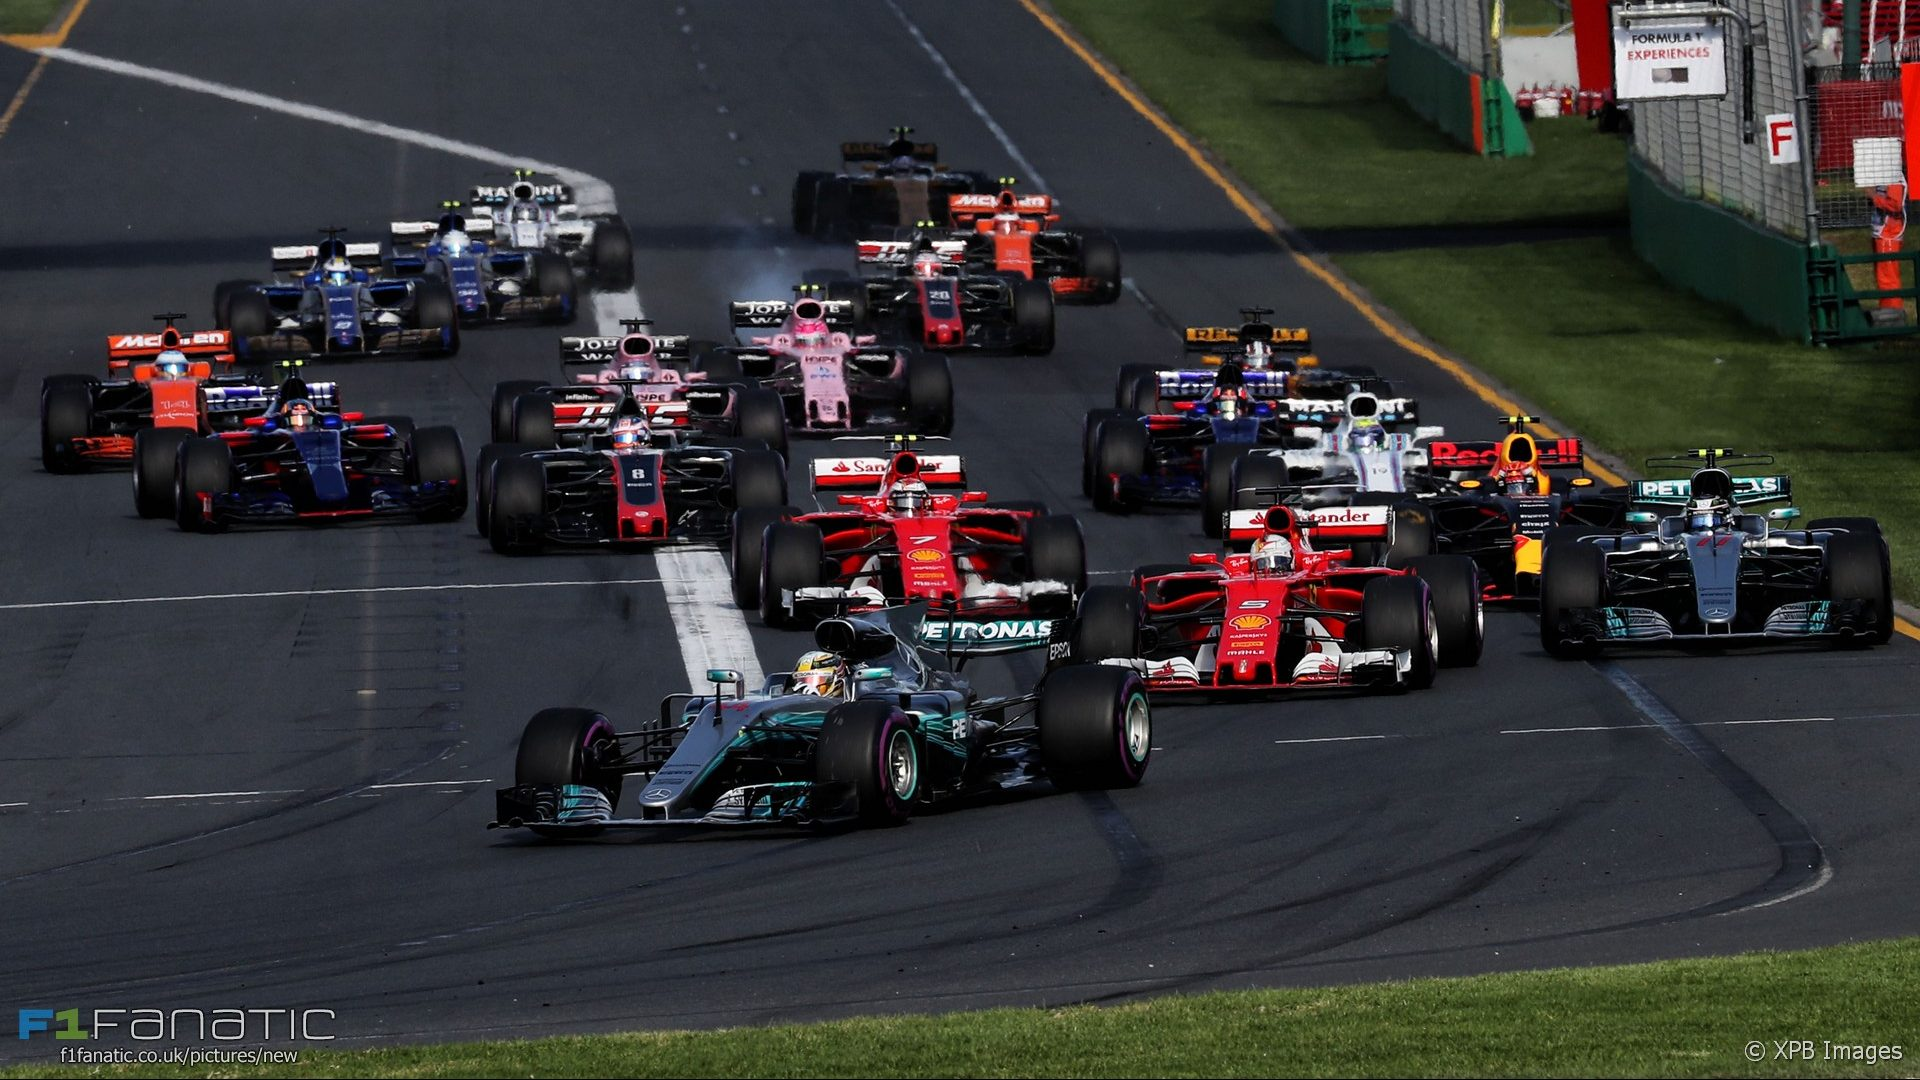 essay on formula one race Personal project formula 1 essay and next time they see a formula 1 race but how it ended you can see in the end of the essay 2.